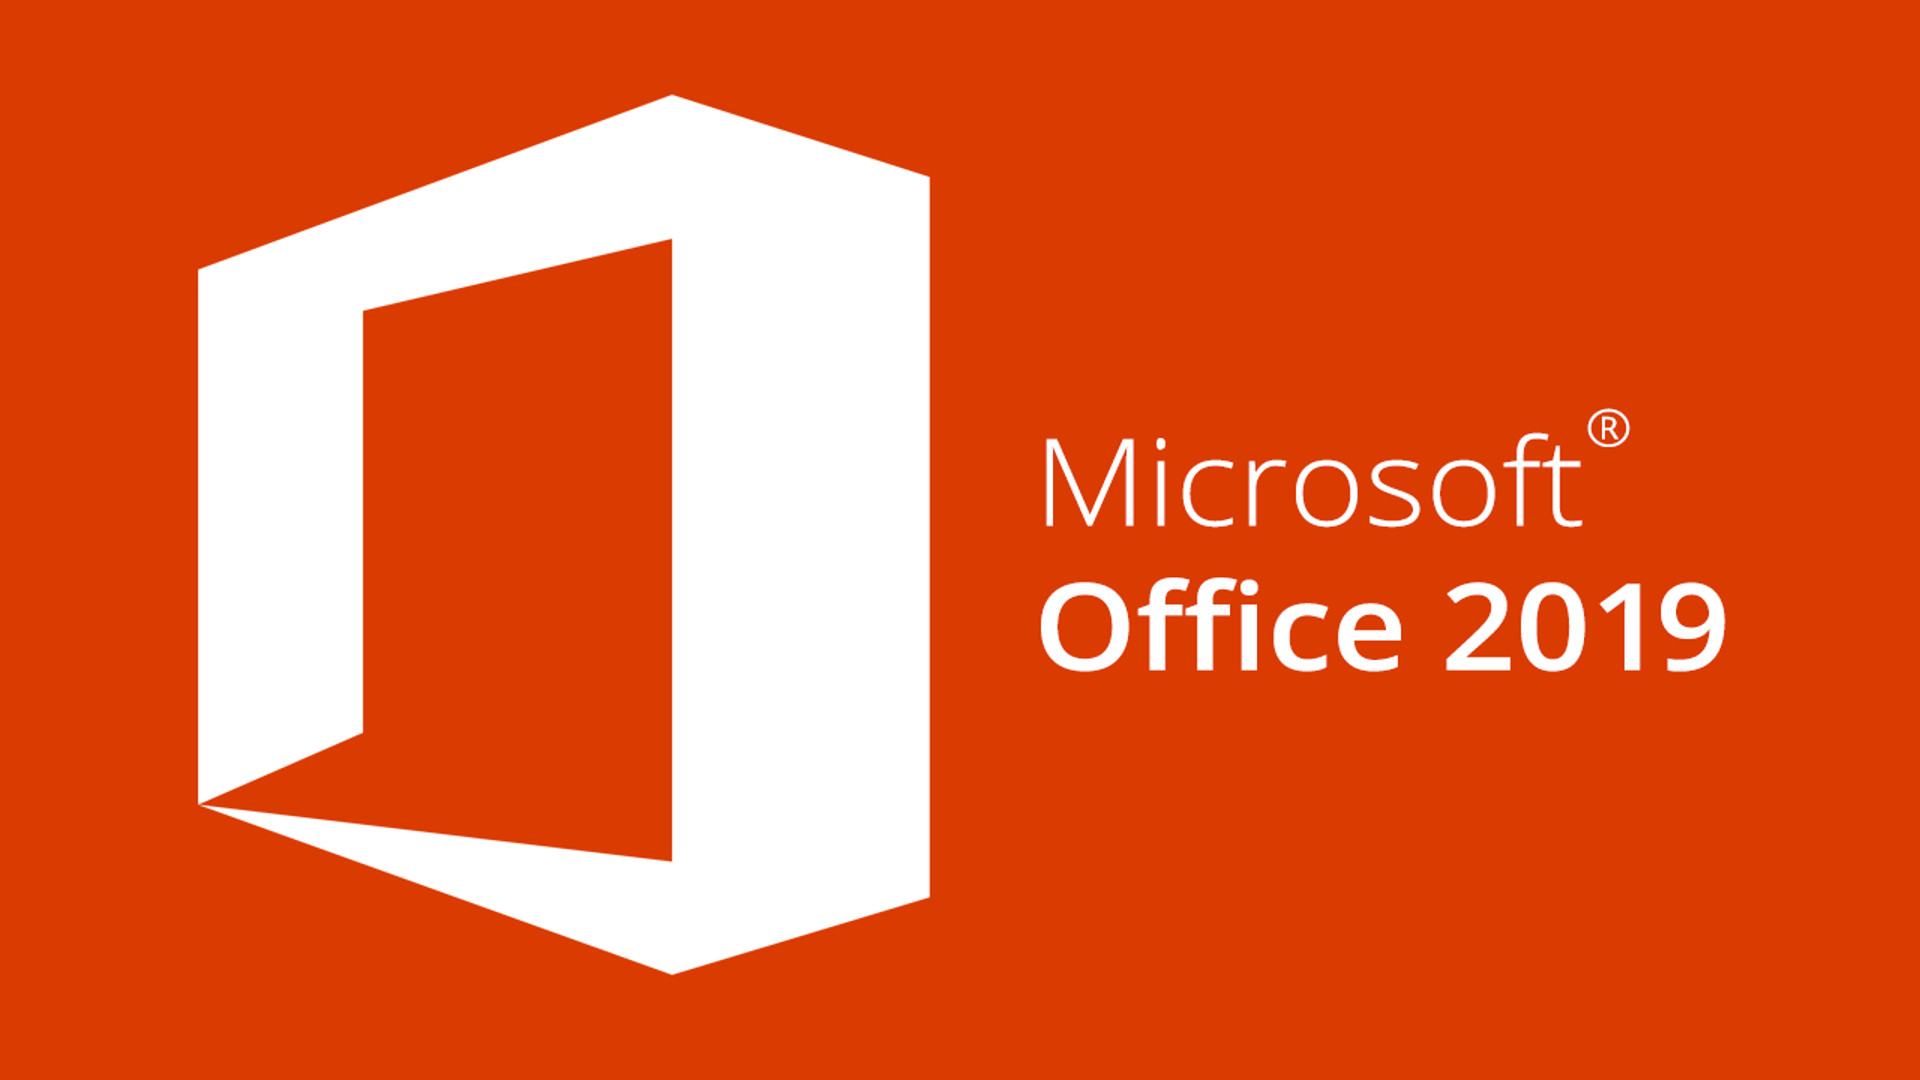 microsoft office company. In Microsoft Ignite Event Orlando, The Company Announced Office 2019 Is Scheduled For Release Late Second Half Of Next Year (2018). S